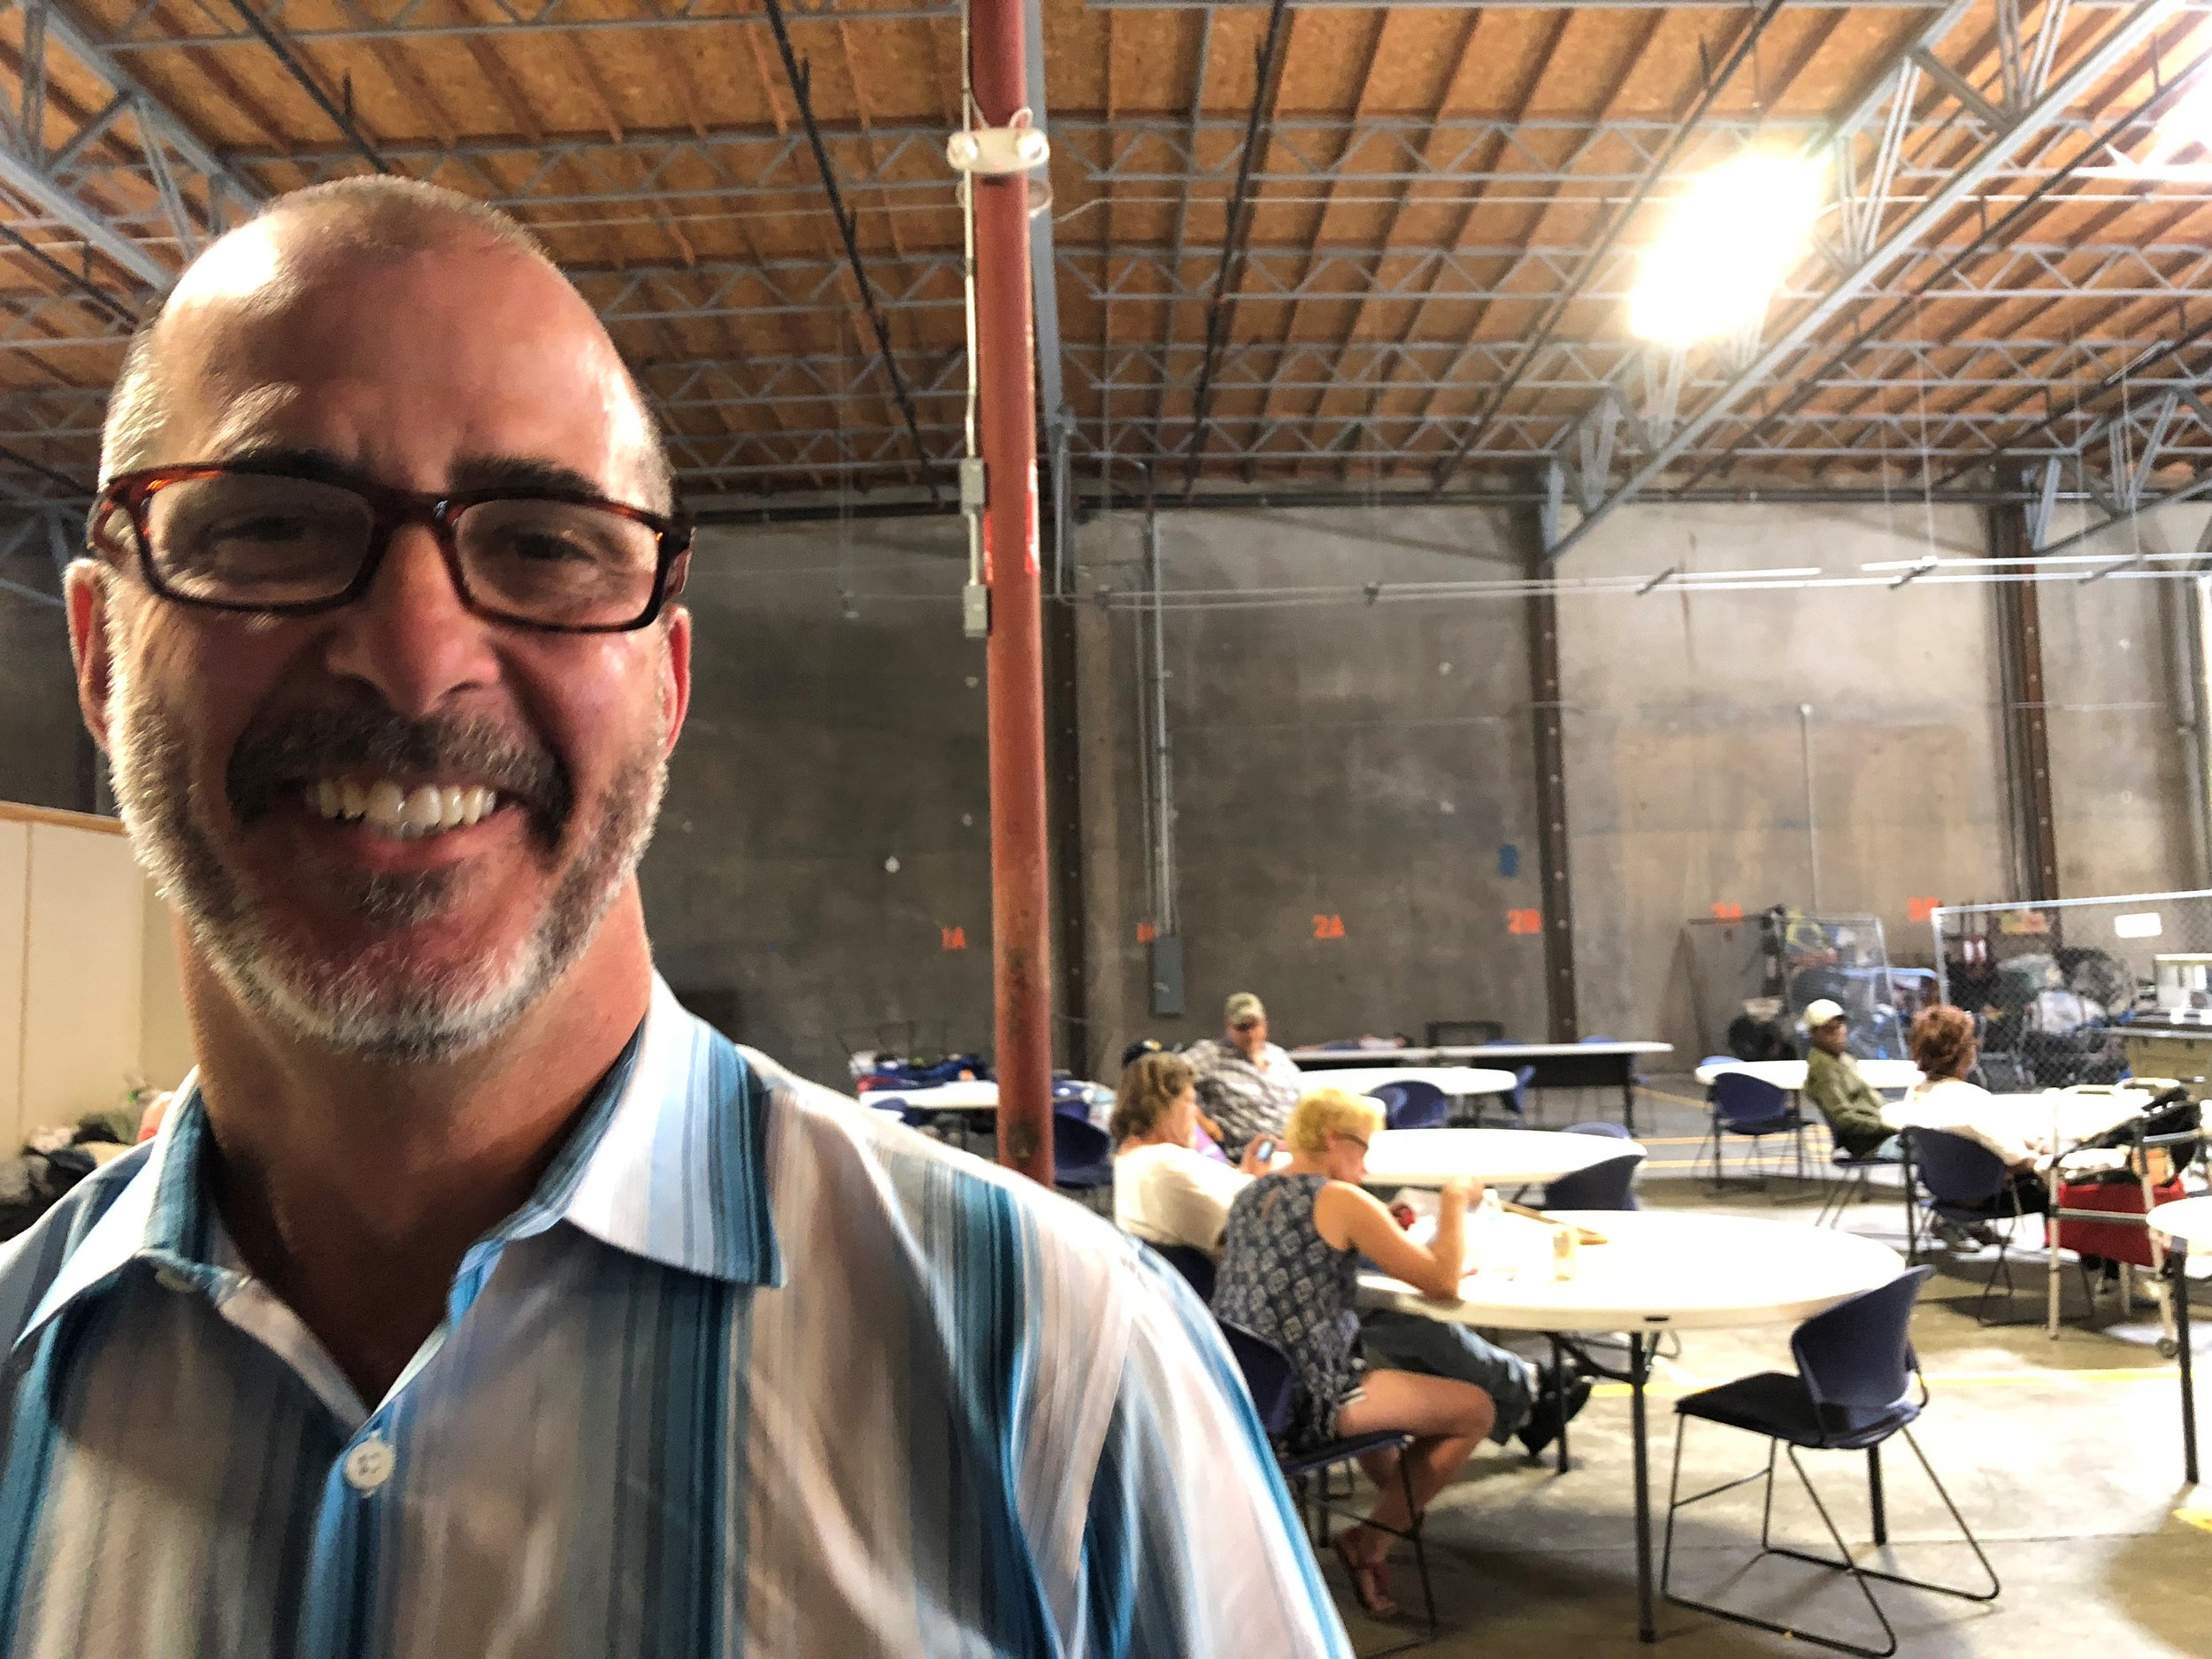 David J. Silveira is the director for shelter services at Volunteers of America, which runs the Triage Center. He said he has been struck by the sense of community that residents have created during their time at the temporary shelter.